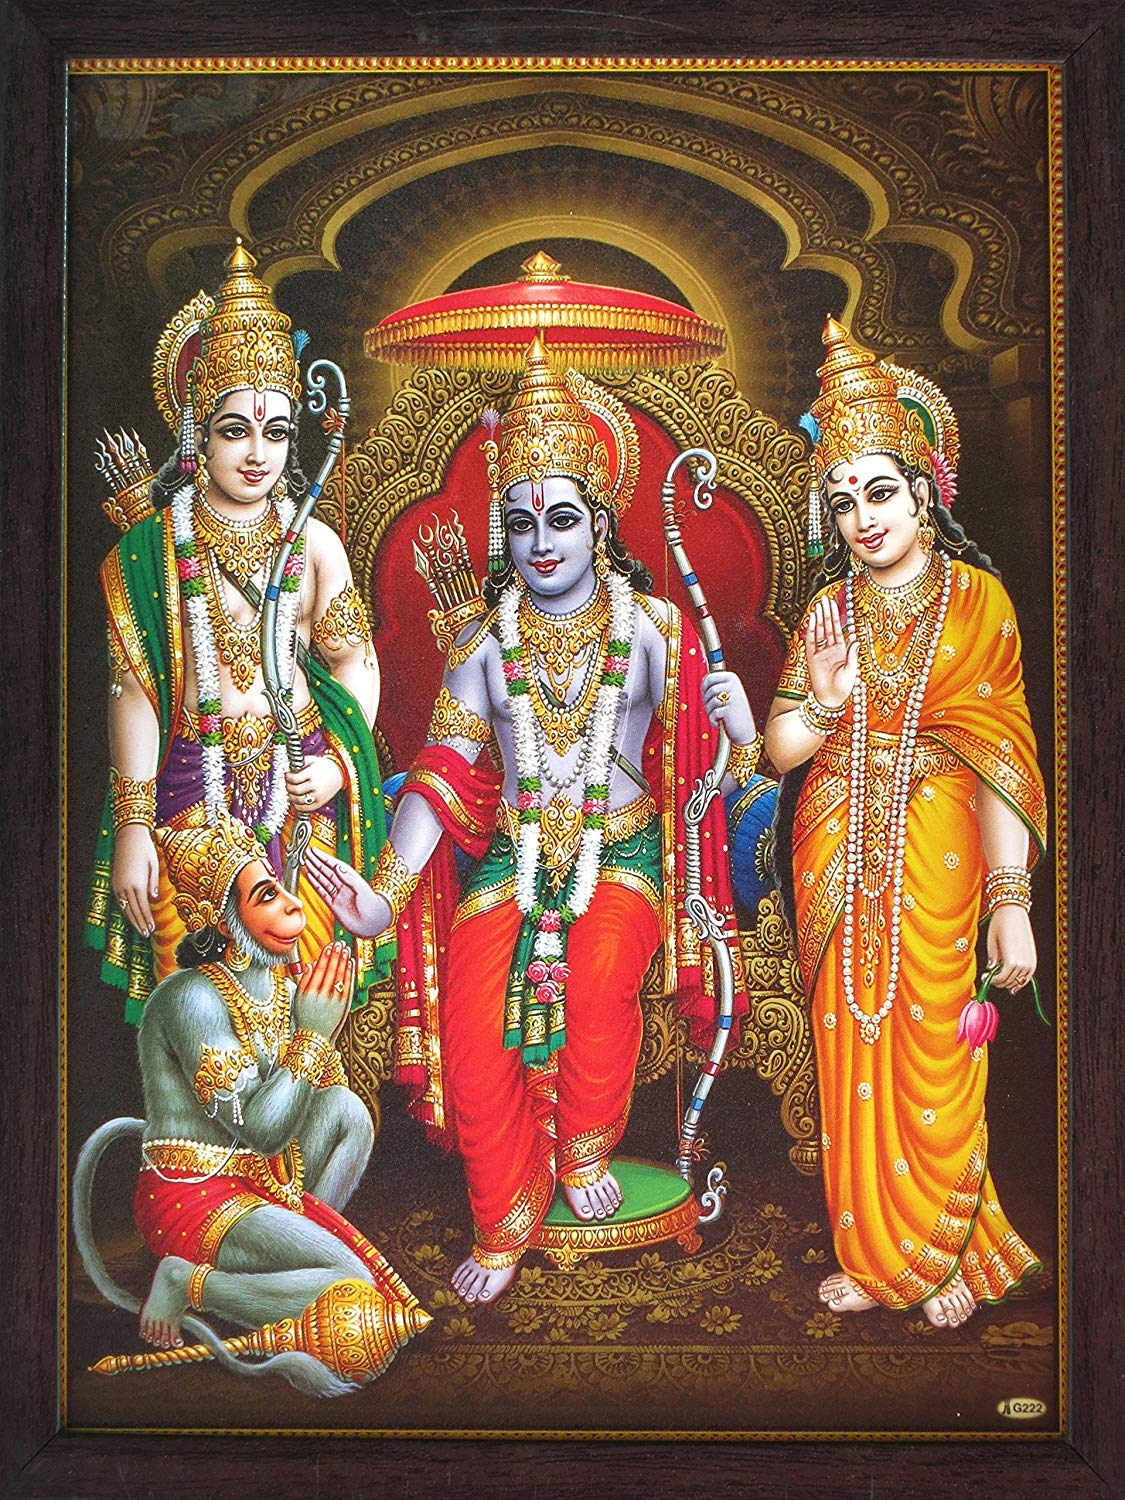 Lord Hanuman Sitting in Ram Darbar and Showing is Dedication Towards His Family, a Holy Religious Poster Painting with Frame for Hindu Worship and Gift Purpose